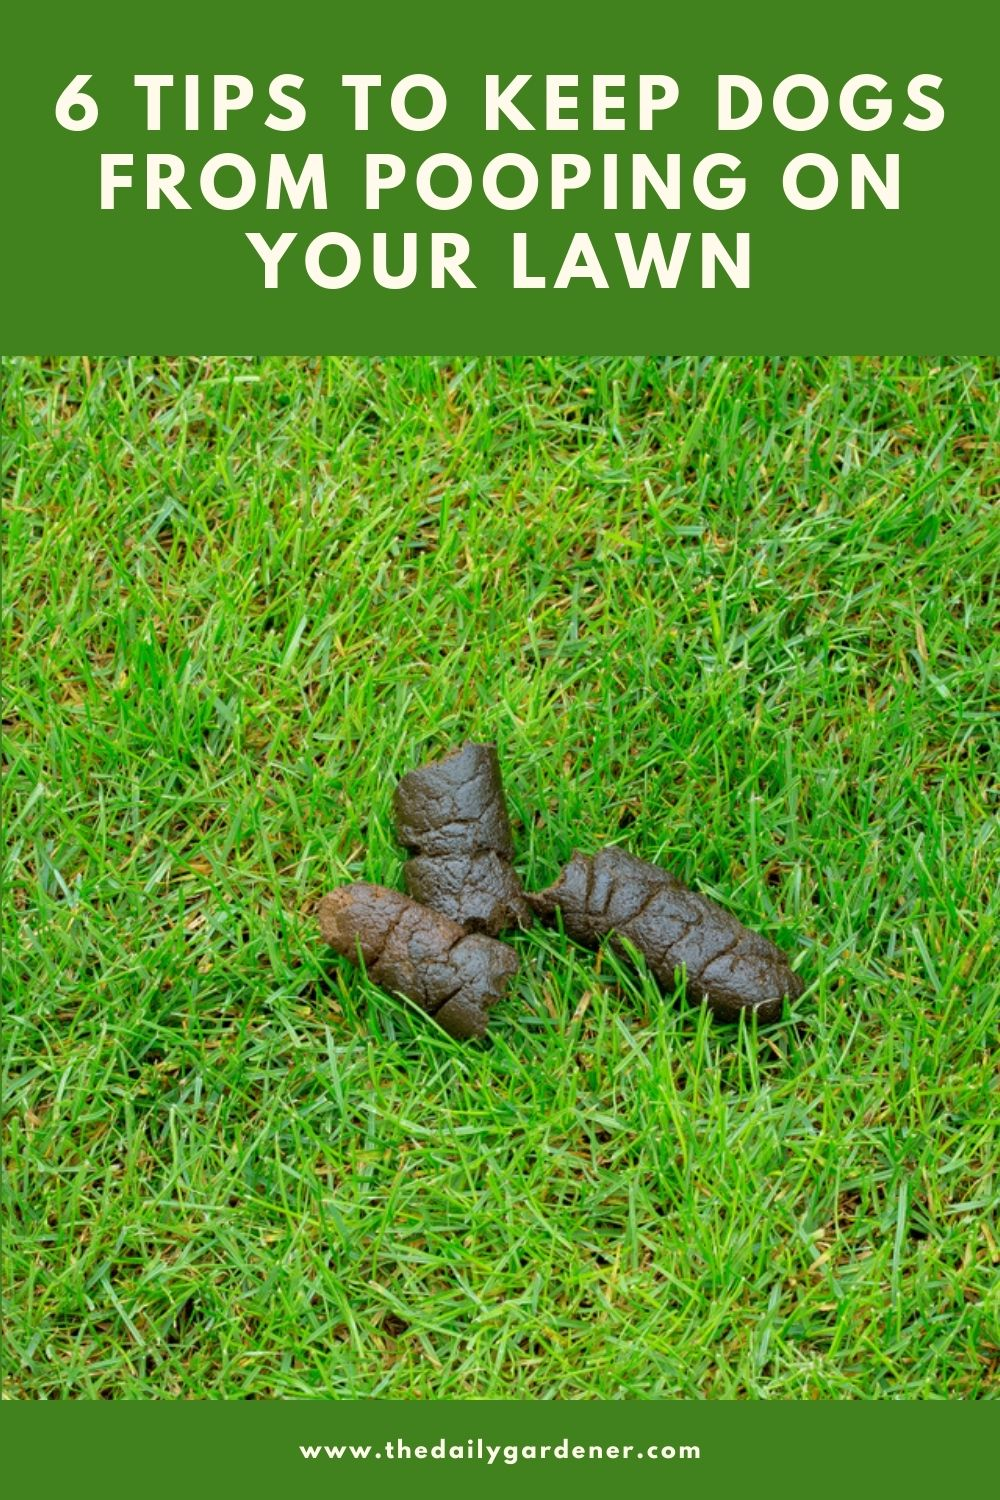 6 Tips to Keep Dogs from Pooping on Your Lawn 2